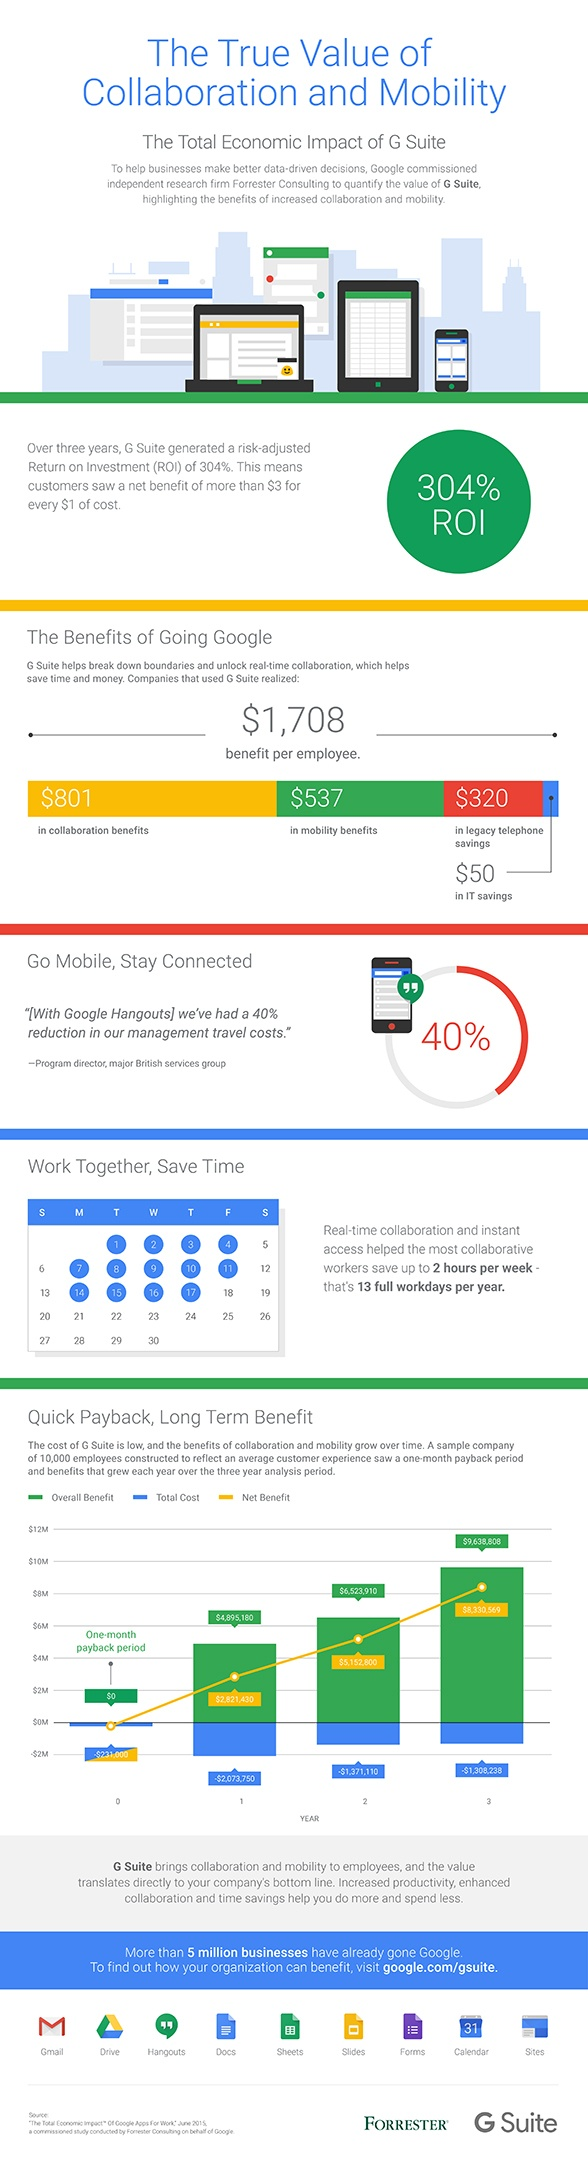 Forrester TEI Report on G Suite